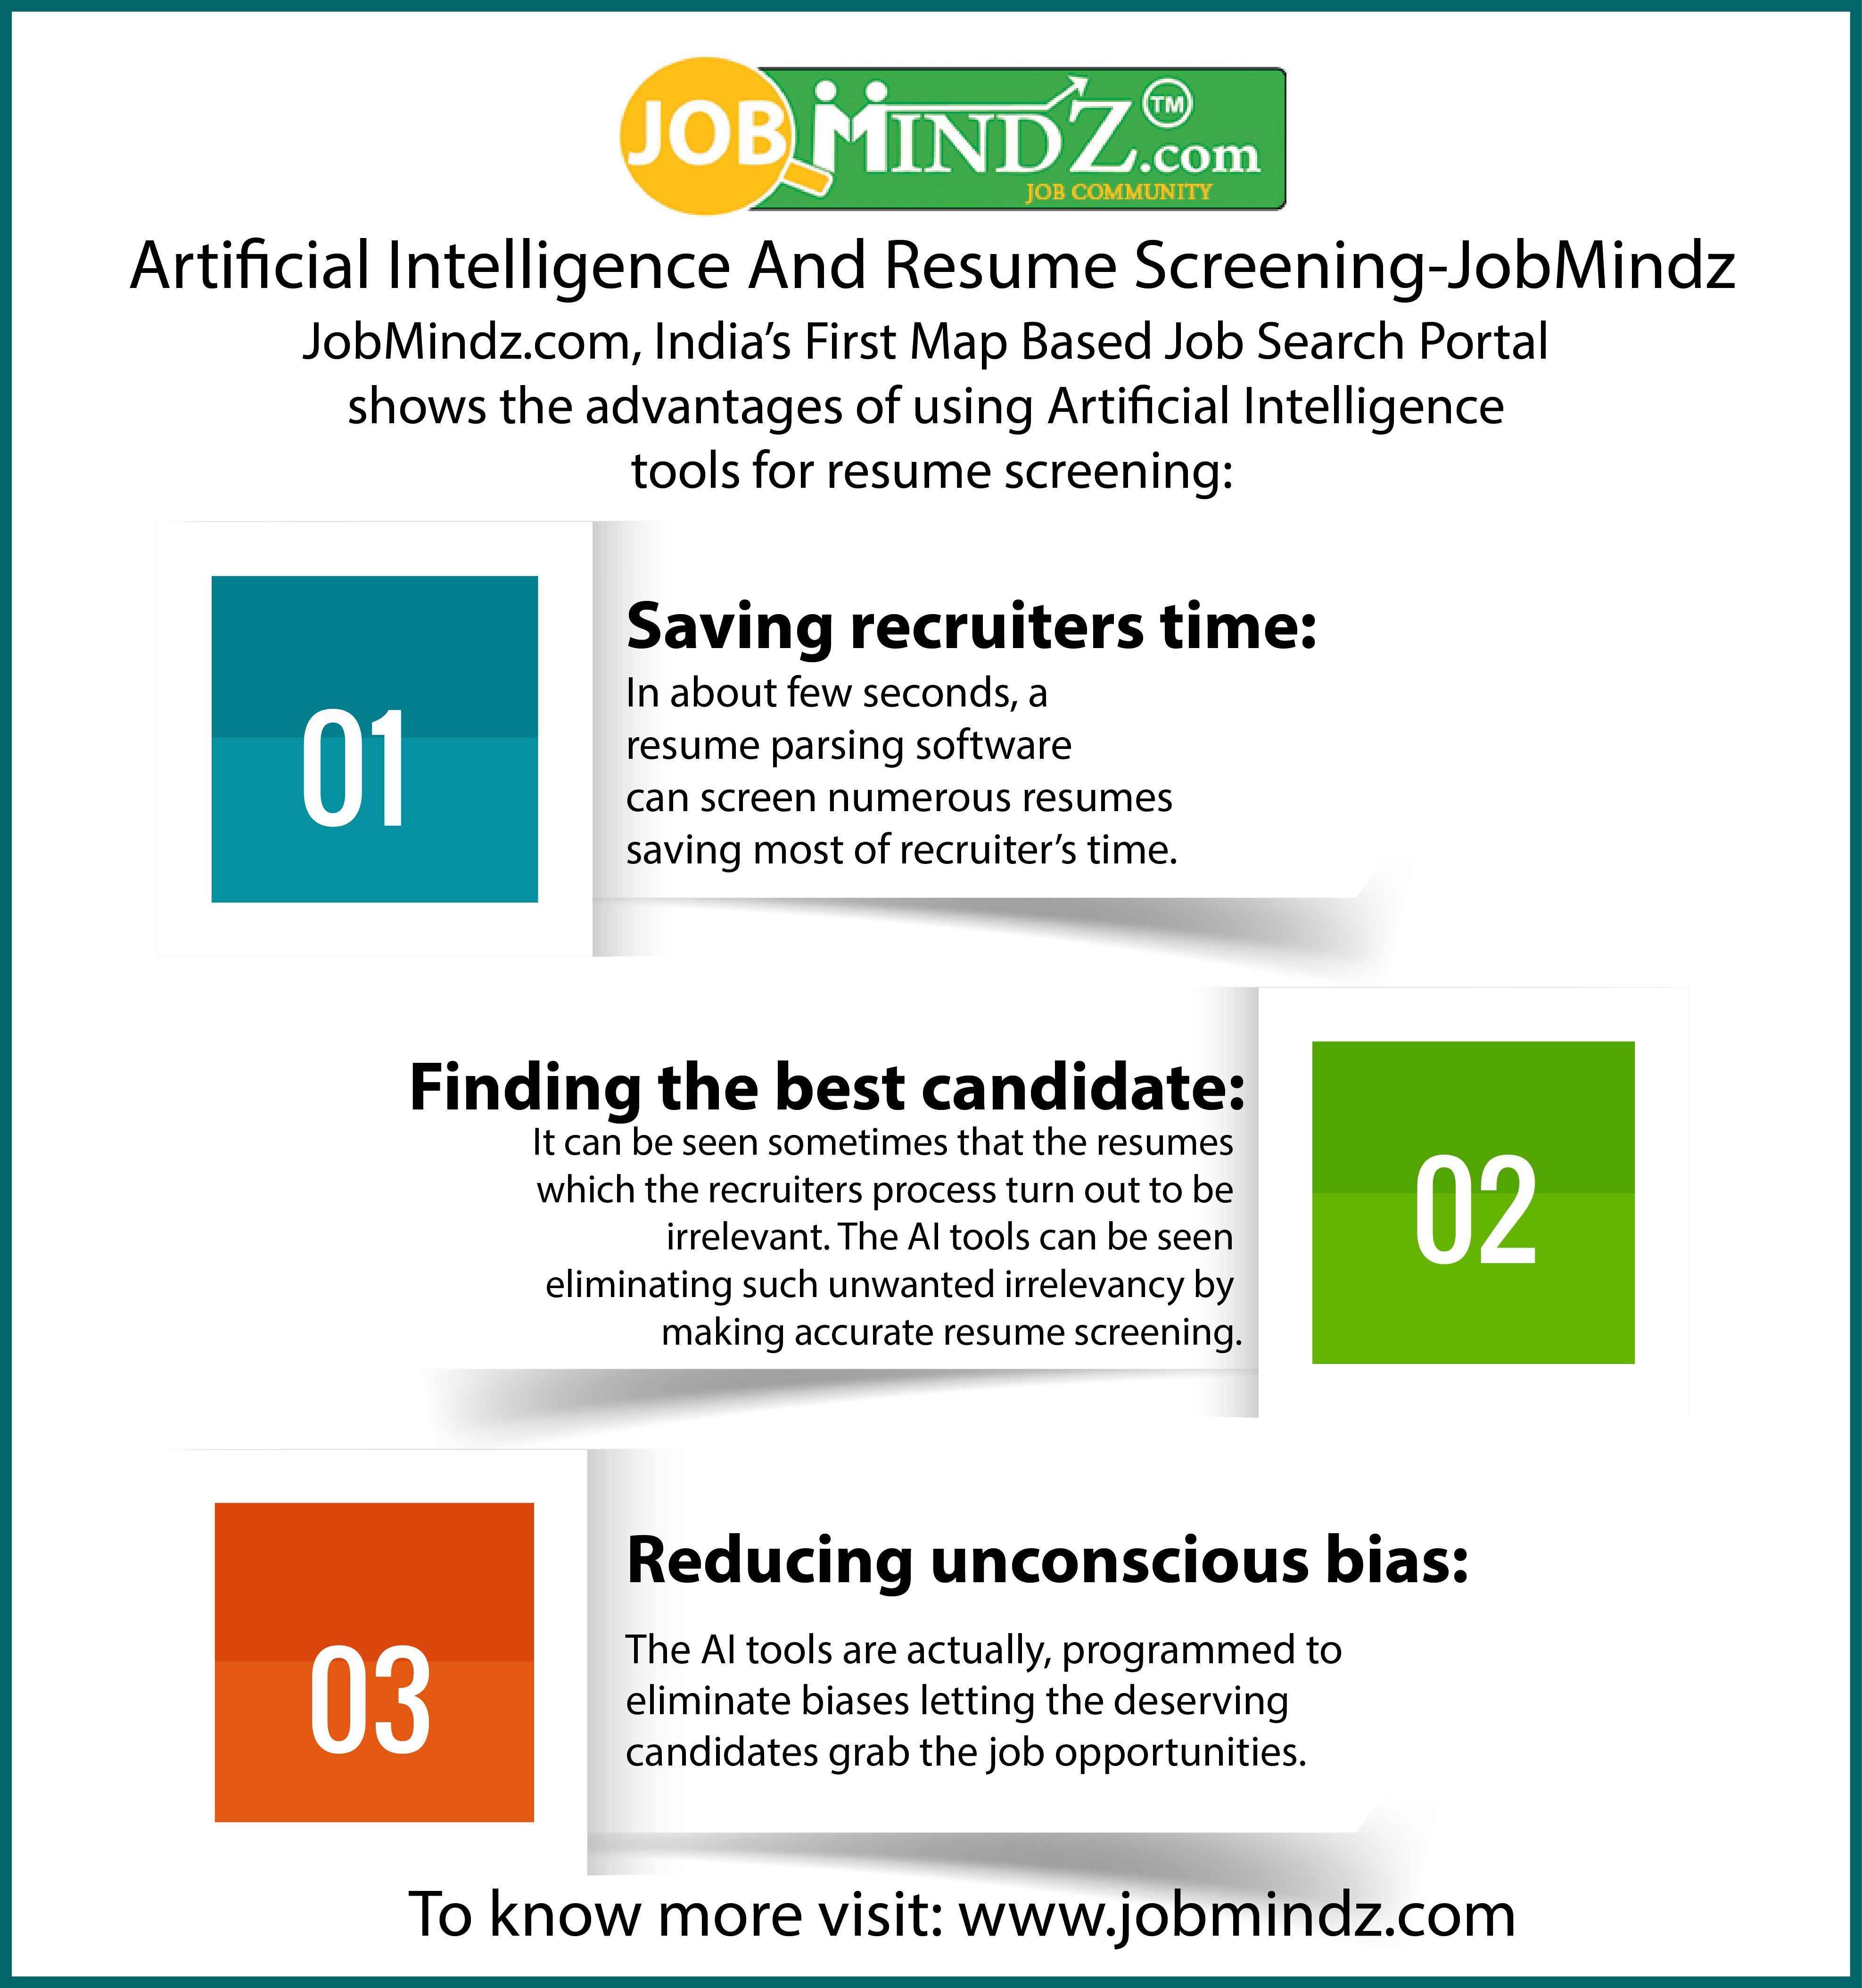 Jobmindz Com Shows The Advantage Of Using Artificial Intelligence Tools For Resume Screening Job Search App Map Ba Resume Artificial Intelligence Job Search